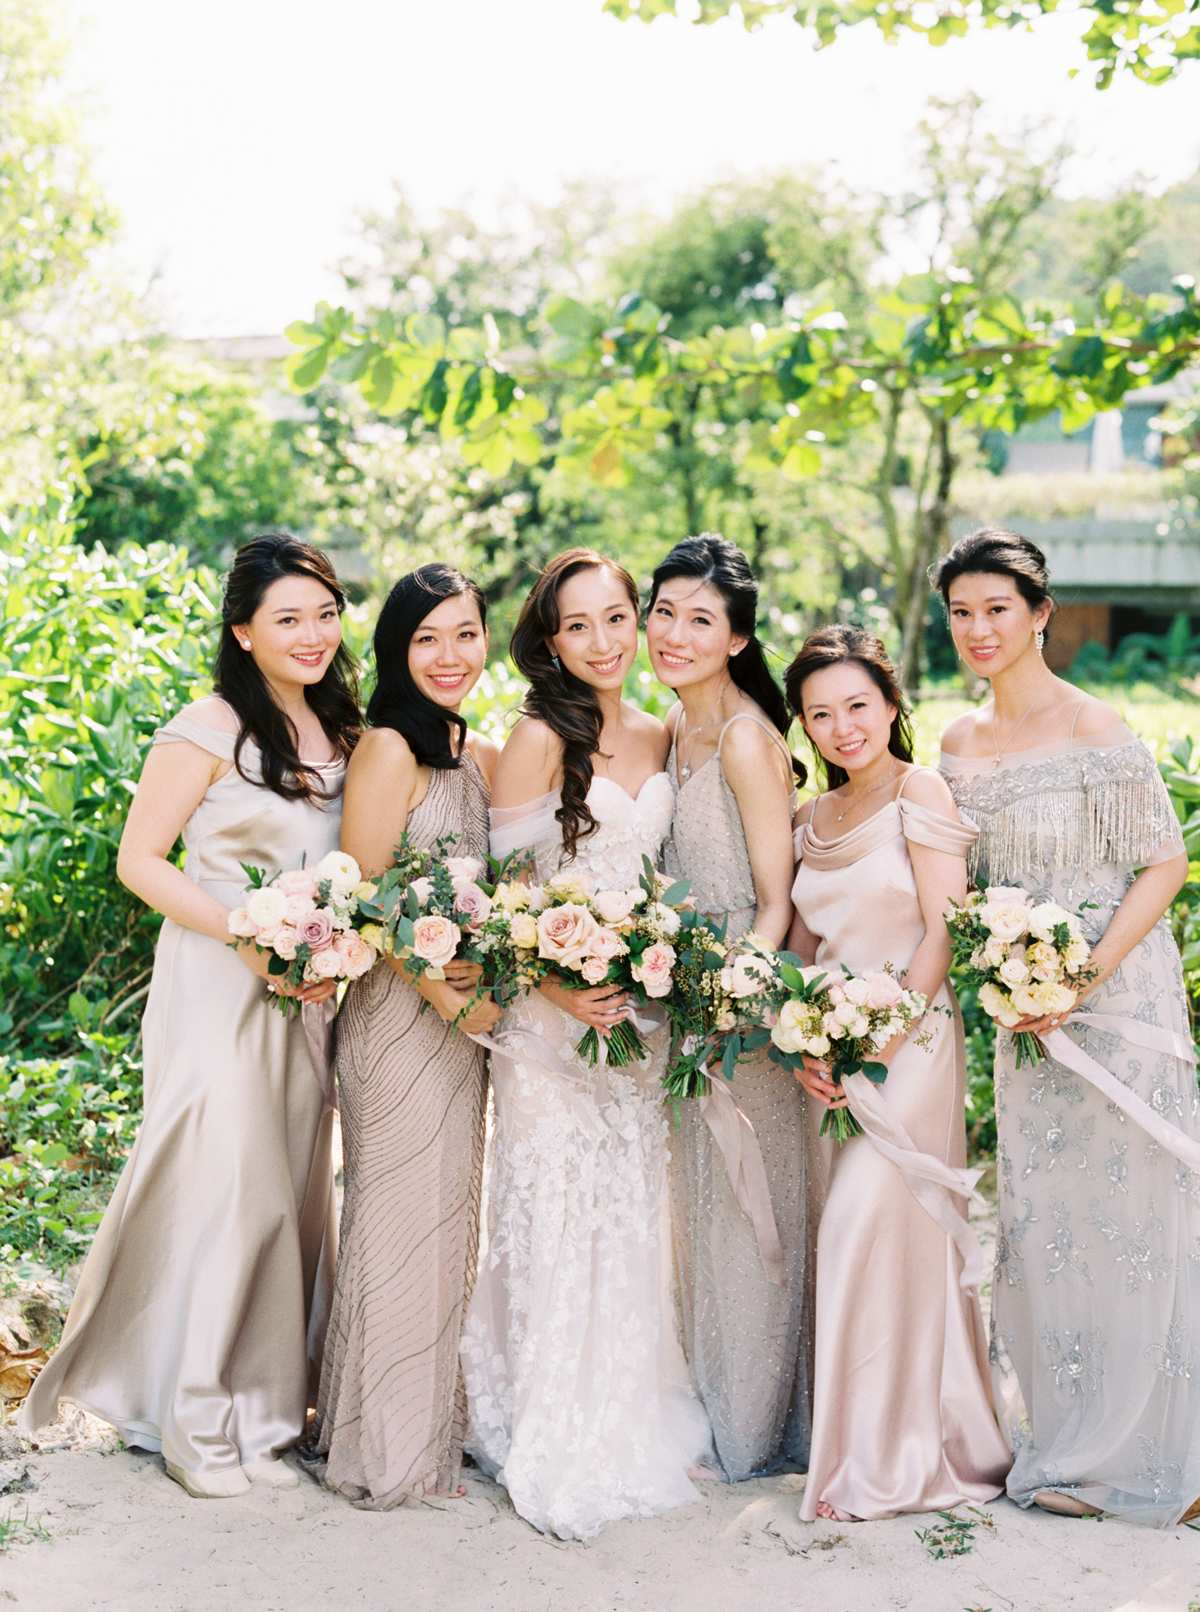 Adrianna Papell and Jenny Yoo bridesmaids dresses